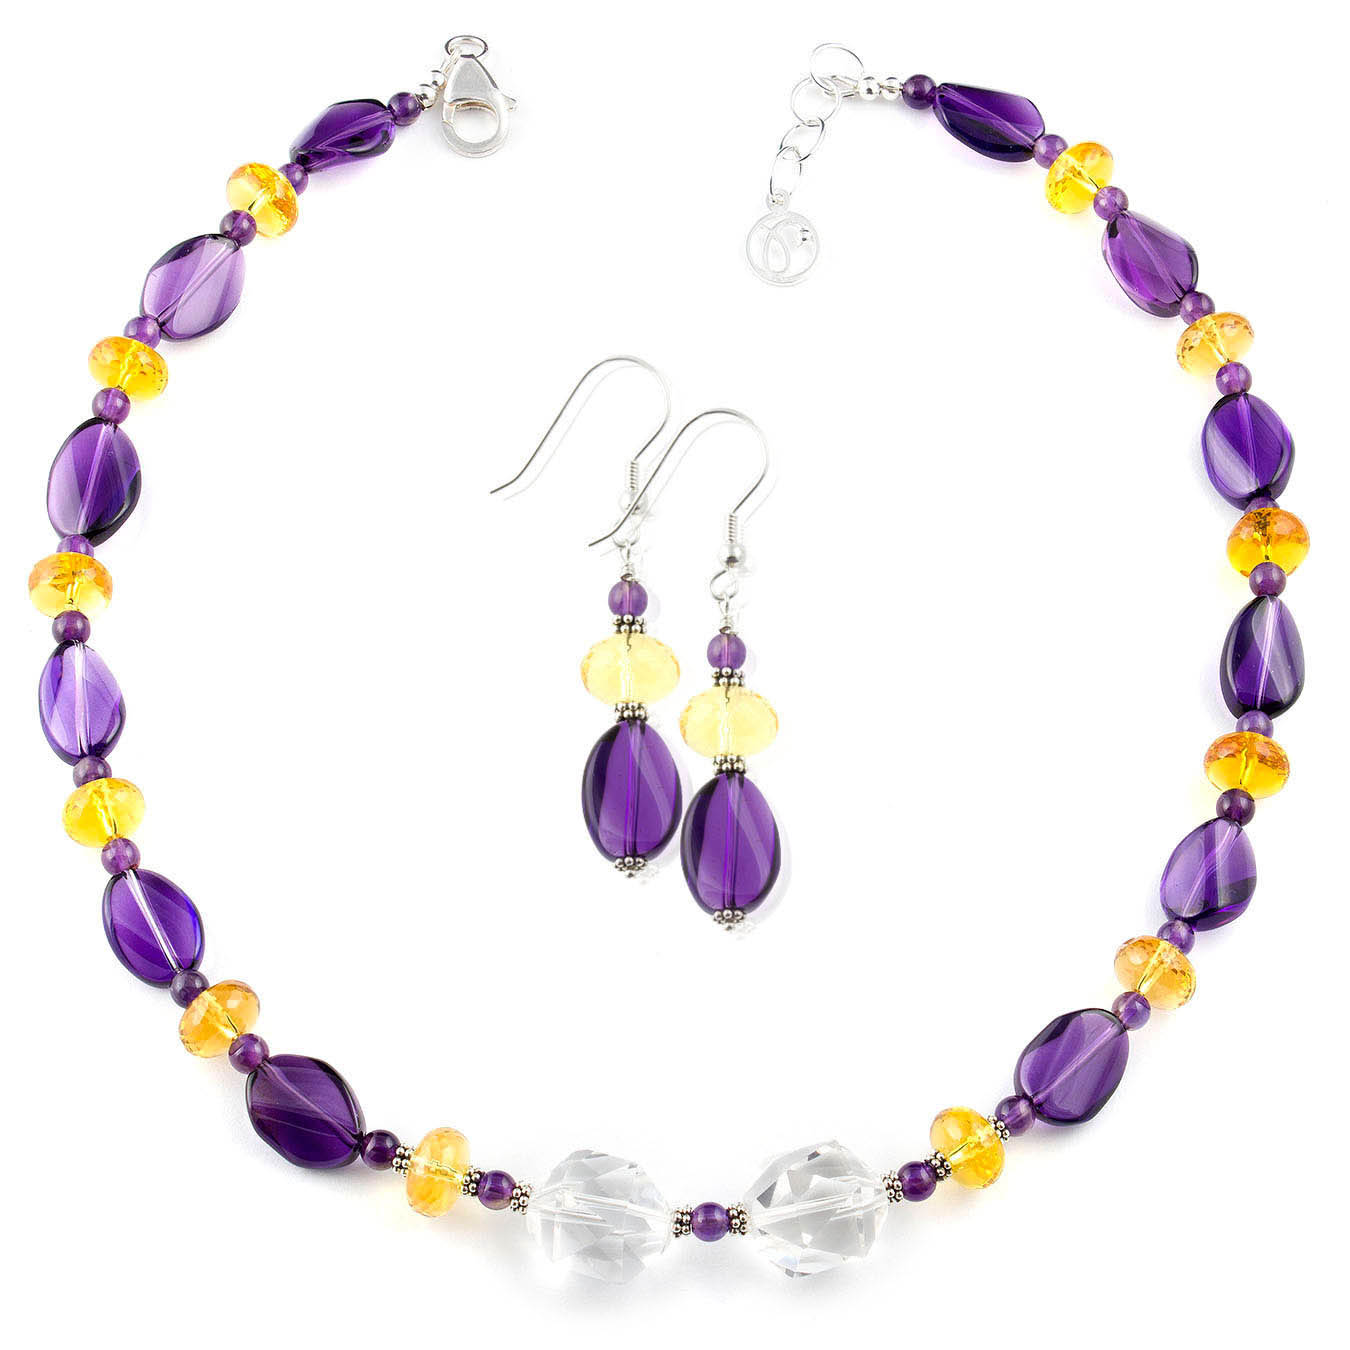 Buy the Amethyst, Citrine & Faceted Clear Quartz Multi-stone Necklace Set at Pirowna, a stone that promotes abundance and success by fostering a clear thinking pattern.